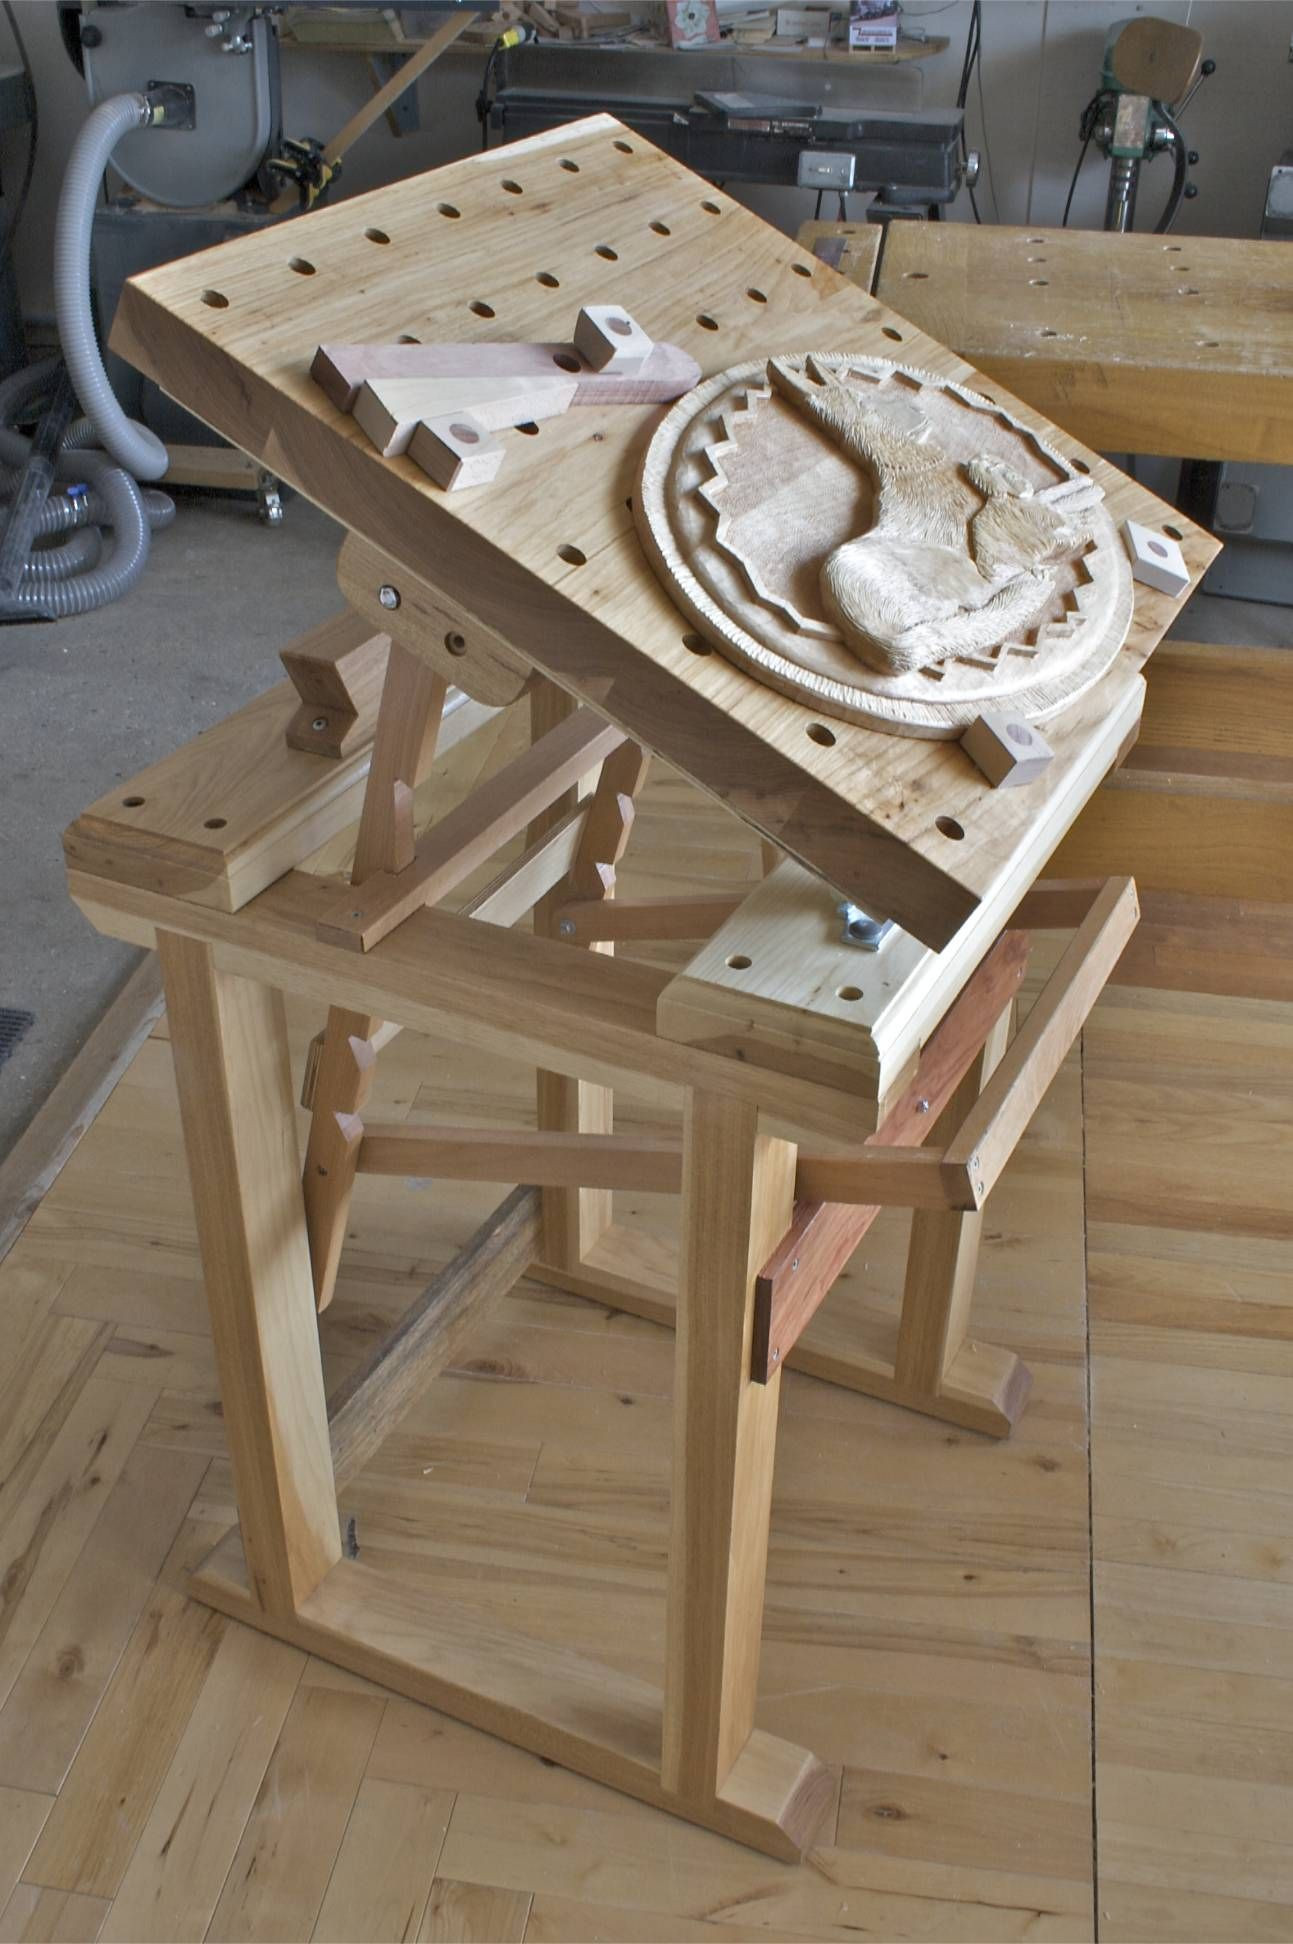 Best ideas about DIY Wood Work . Save or Pin Pin by Ernest Natiello on wood in 2019 Now.